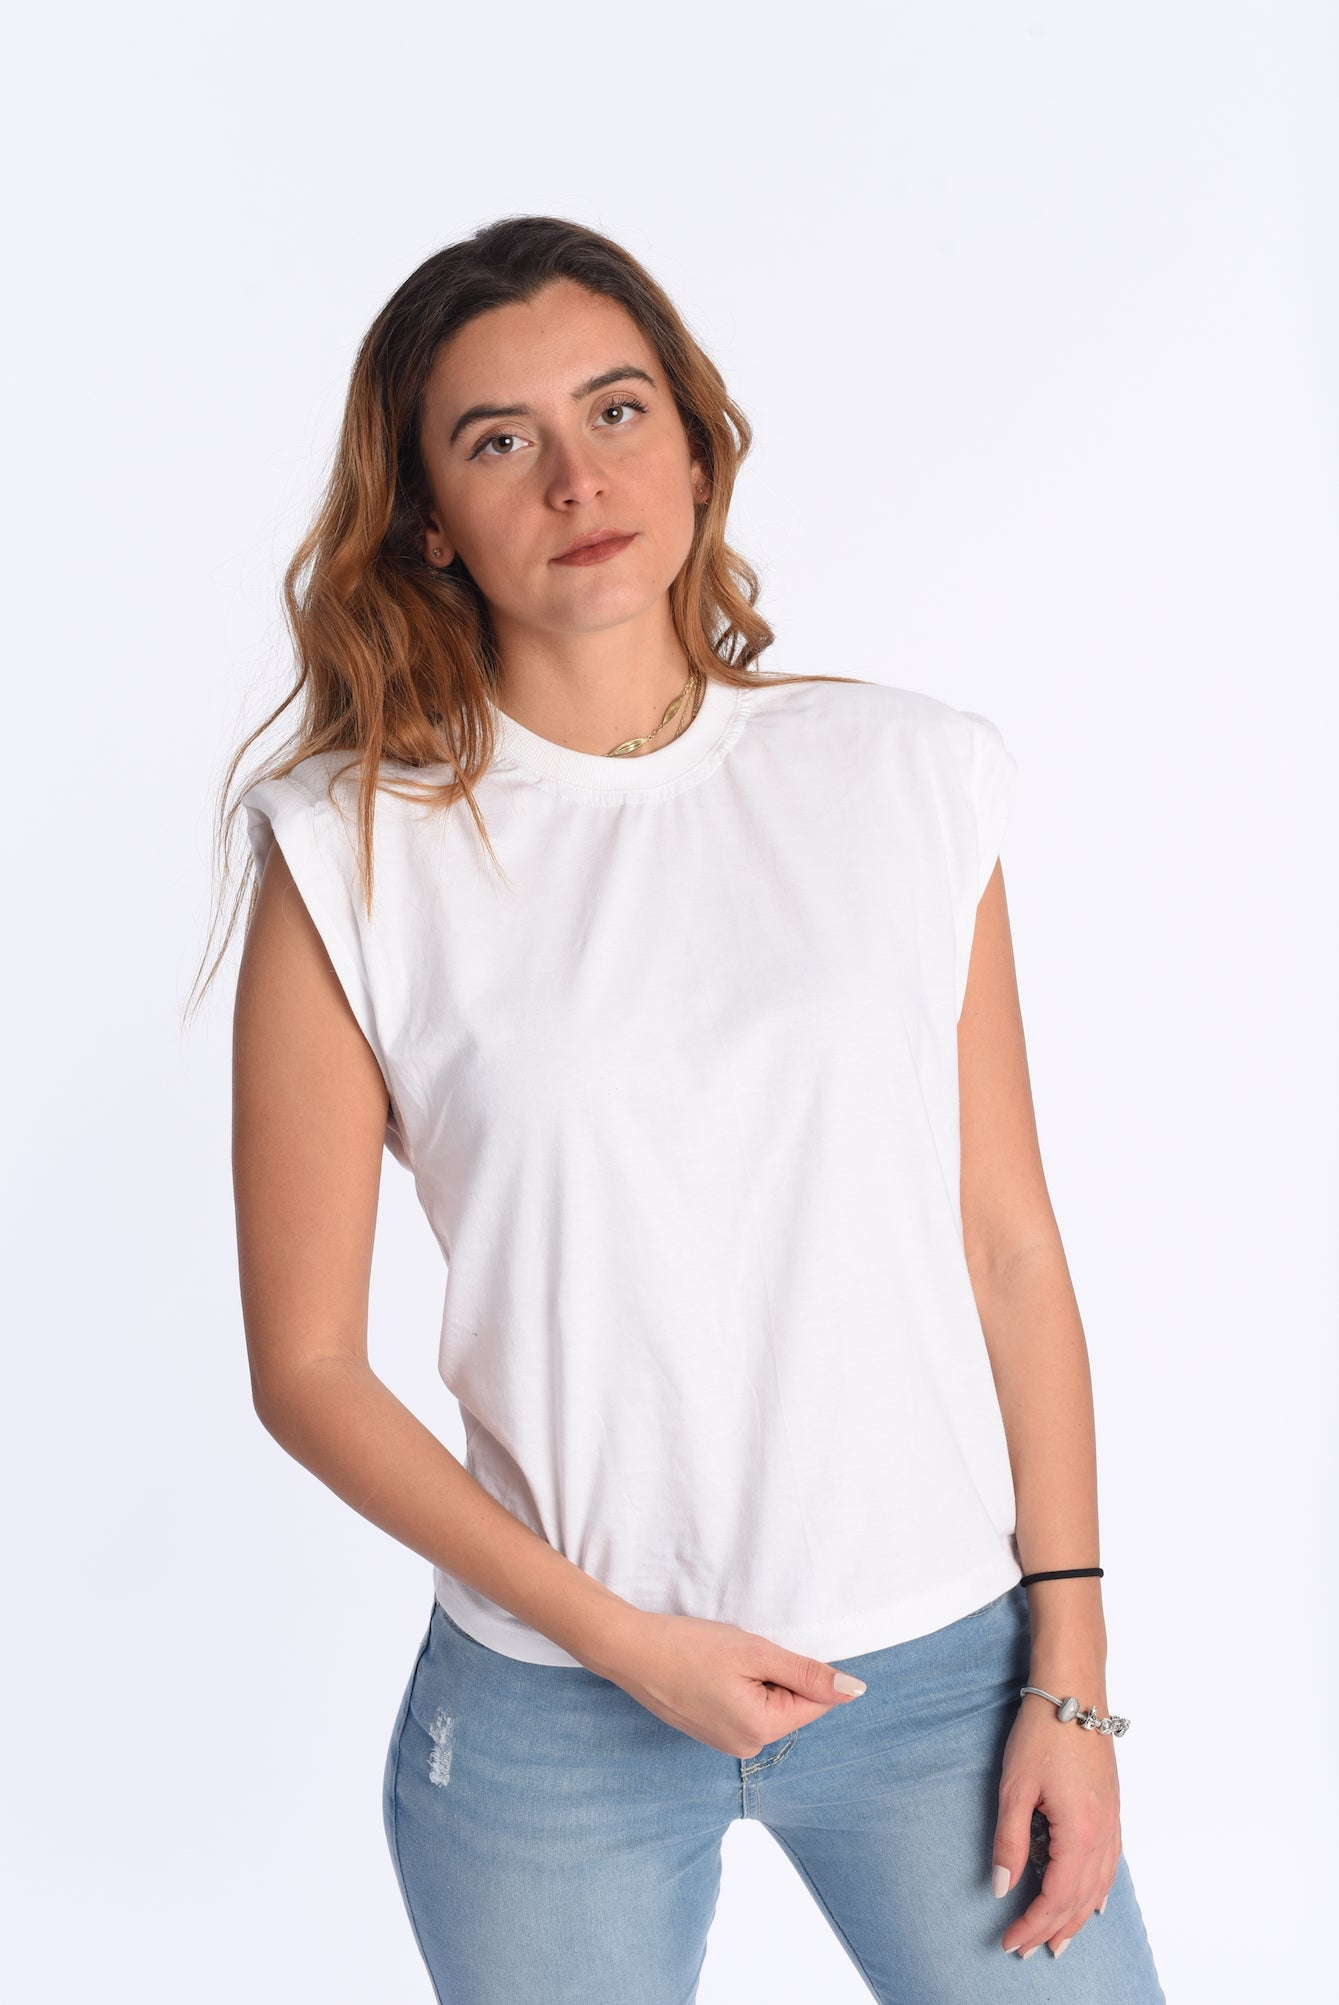 Pad t-shirt in white